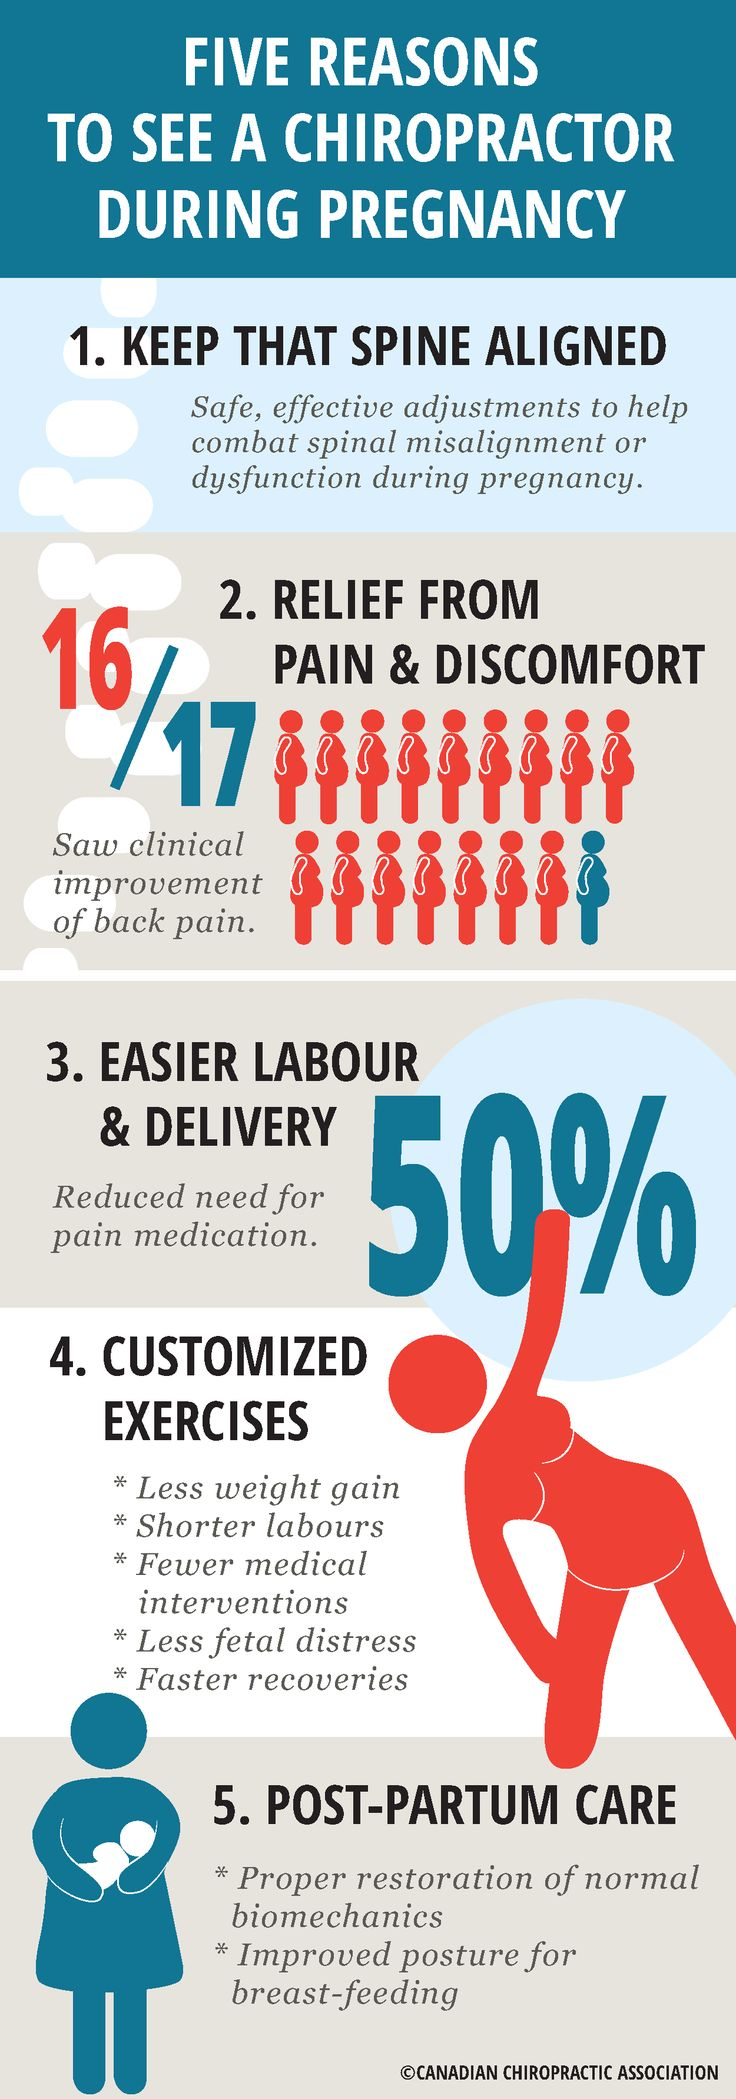 Chiropractic therapy during Pregnancy